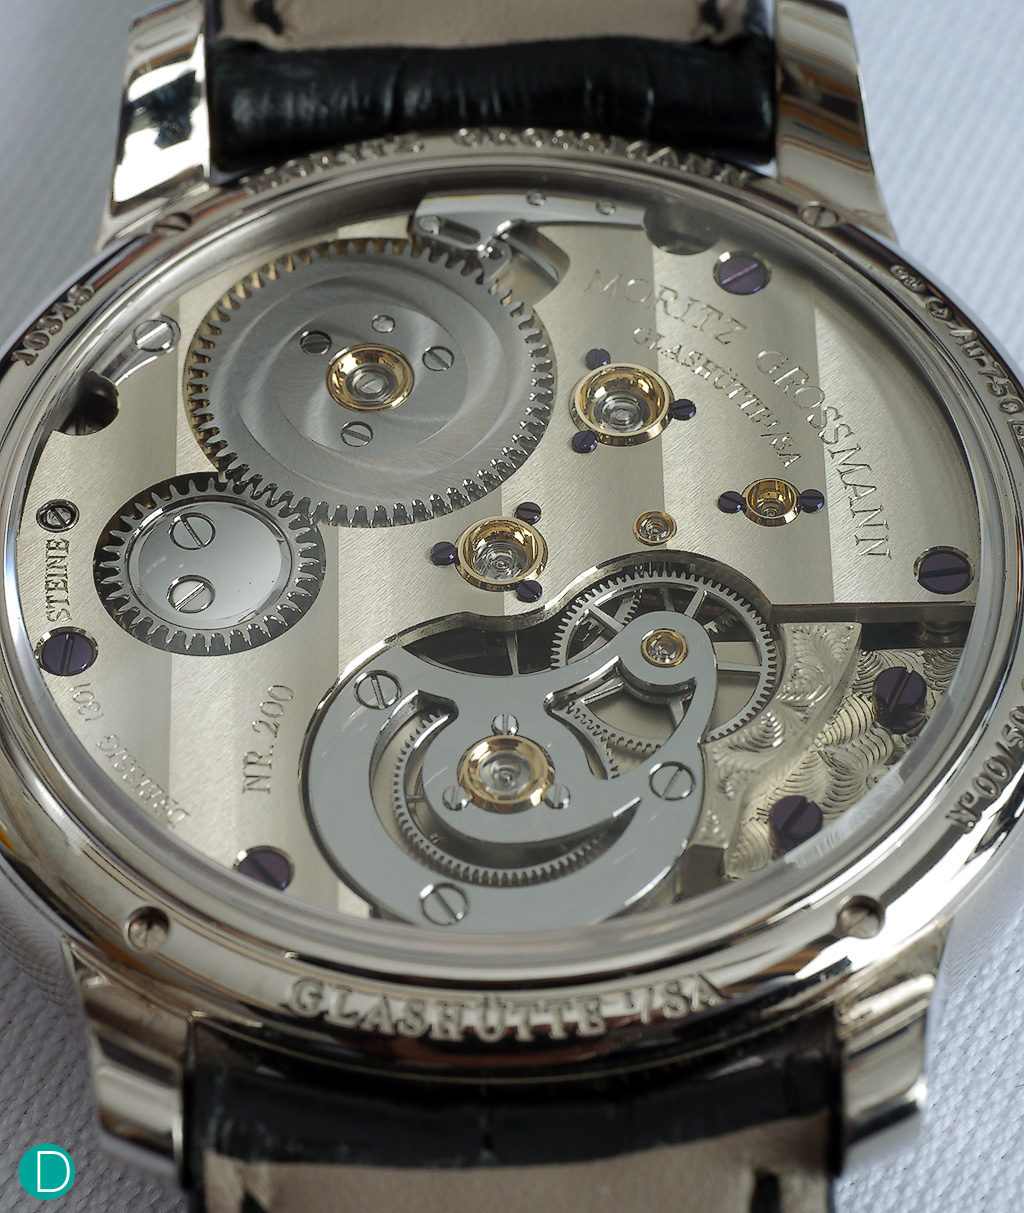 The caliber 103.0 in unfinished German Silver, but with the gear train in ultra modern ARCAP.  The movement is finished with wide Glashütte ribbing, and hand engraved details.